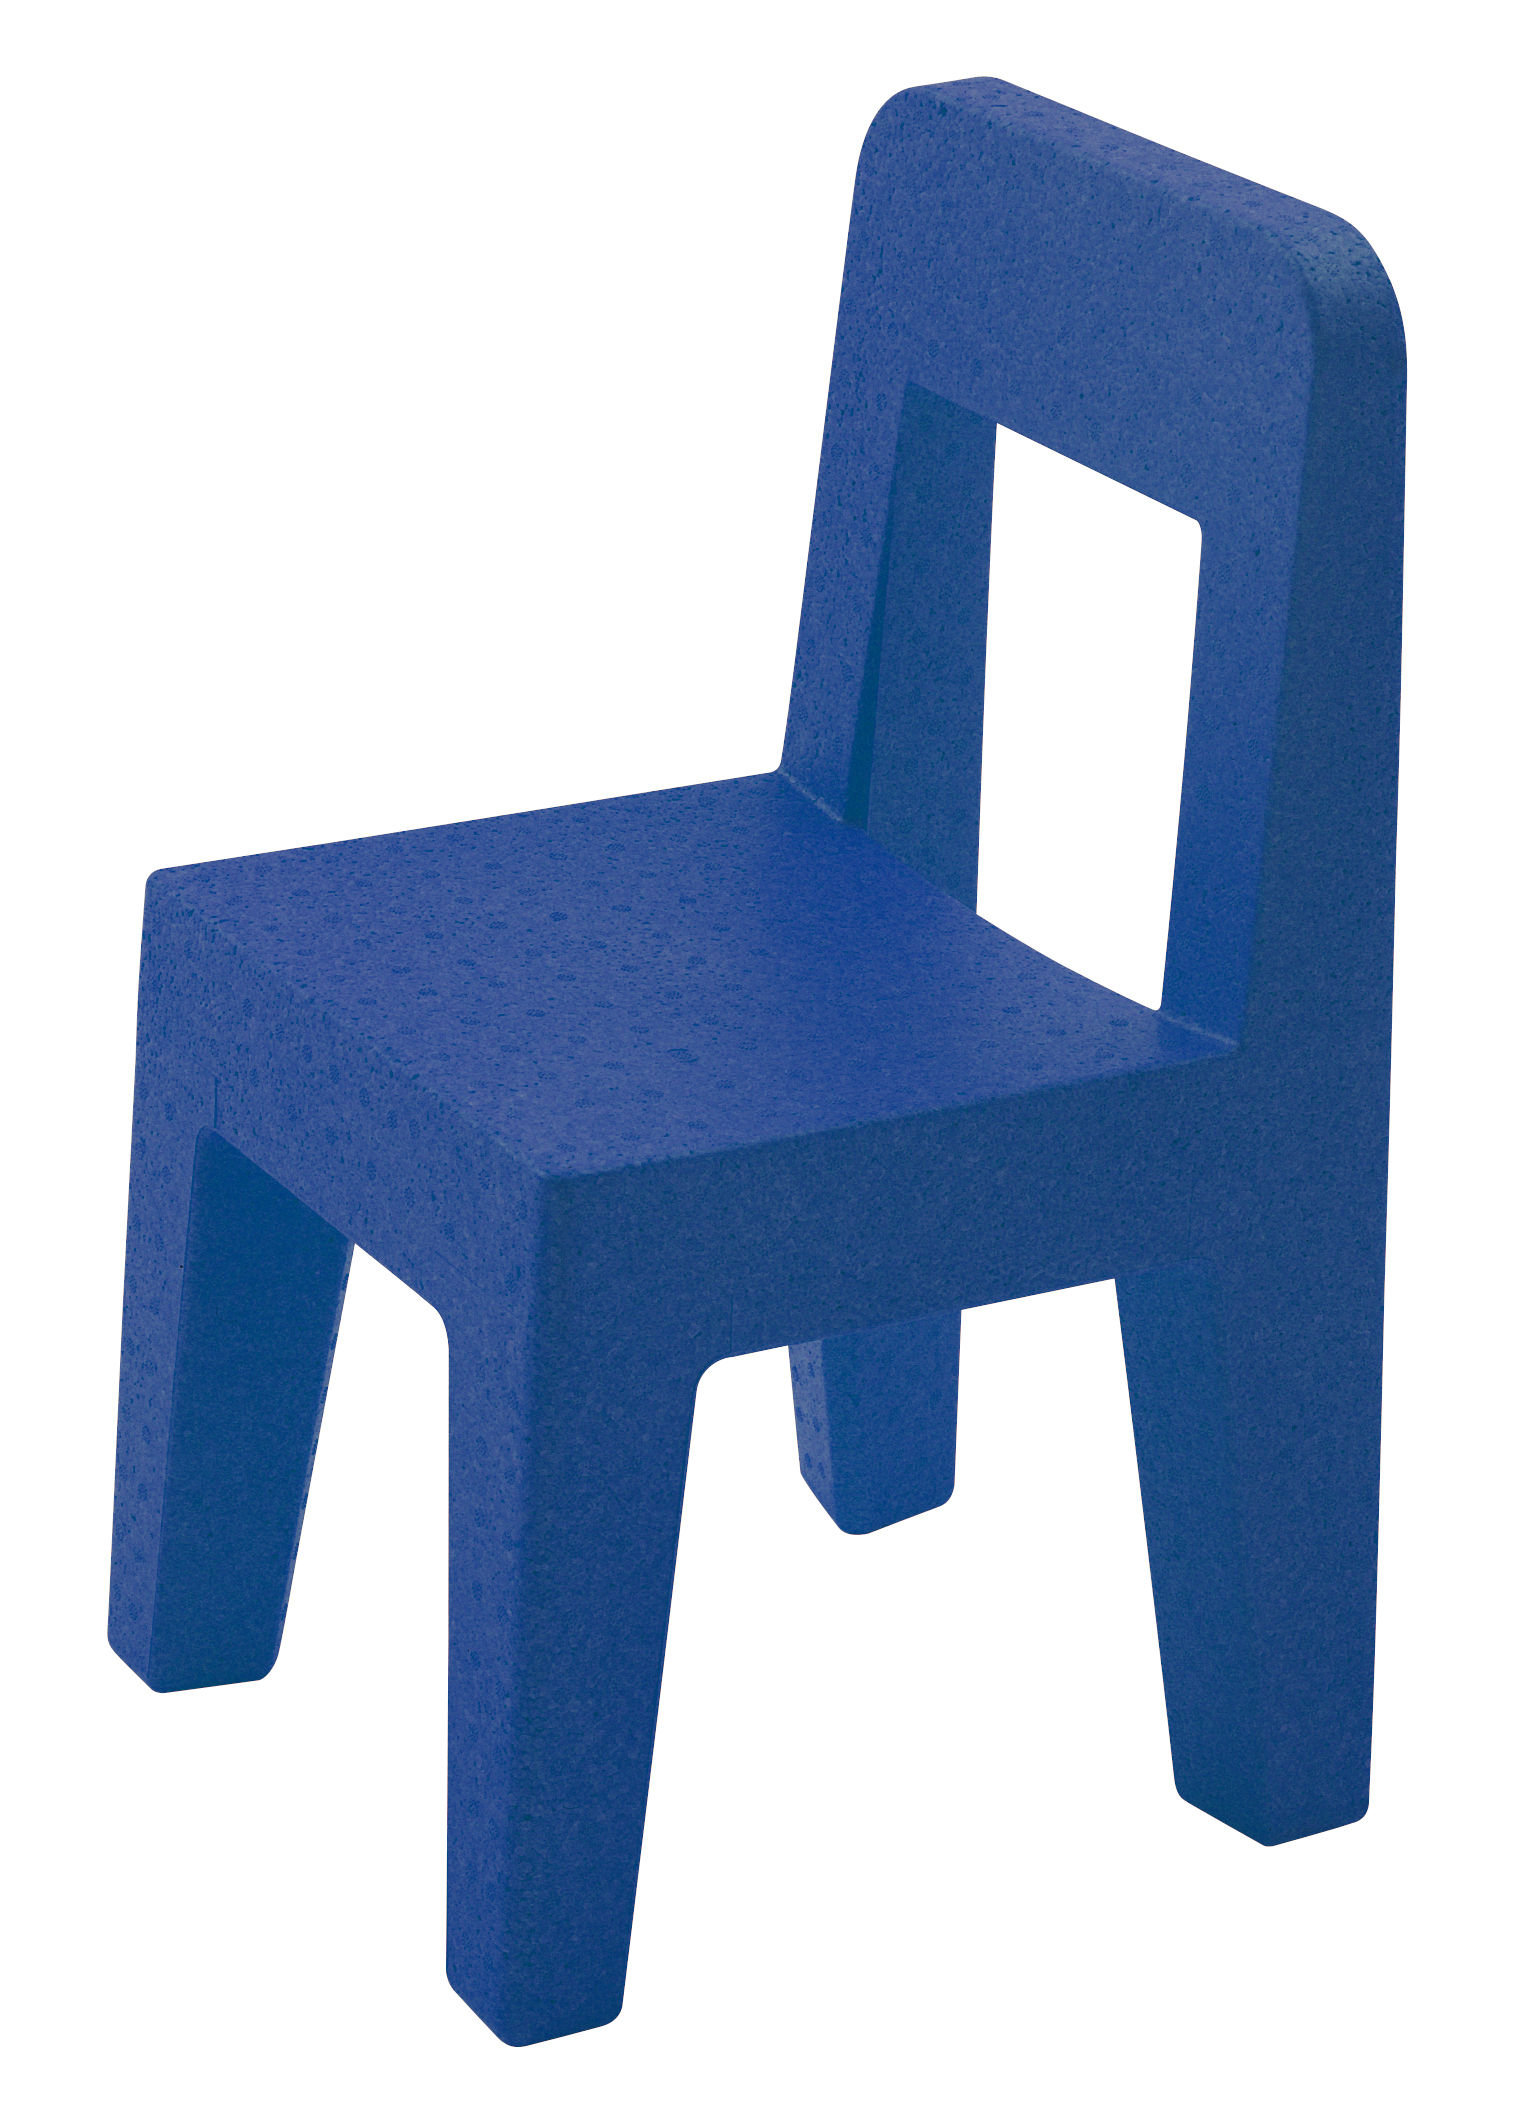 Mobilier - Mobilier Kids - Chaise enfant Seggiolina Pop - Magis Collection Me Too - Bleu - Polypropylène